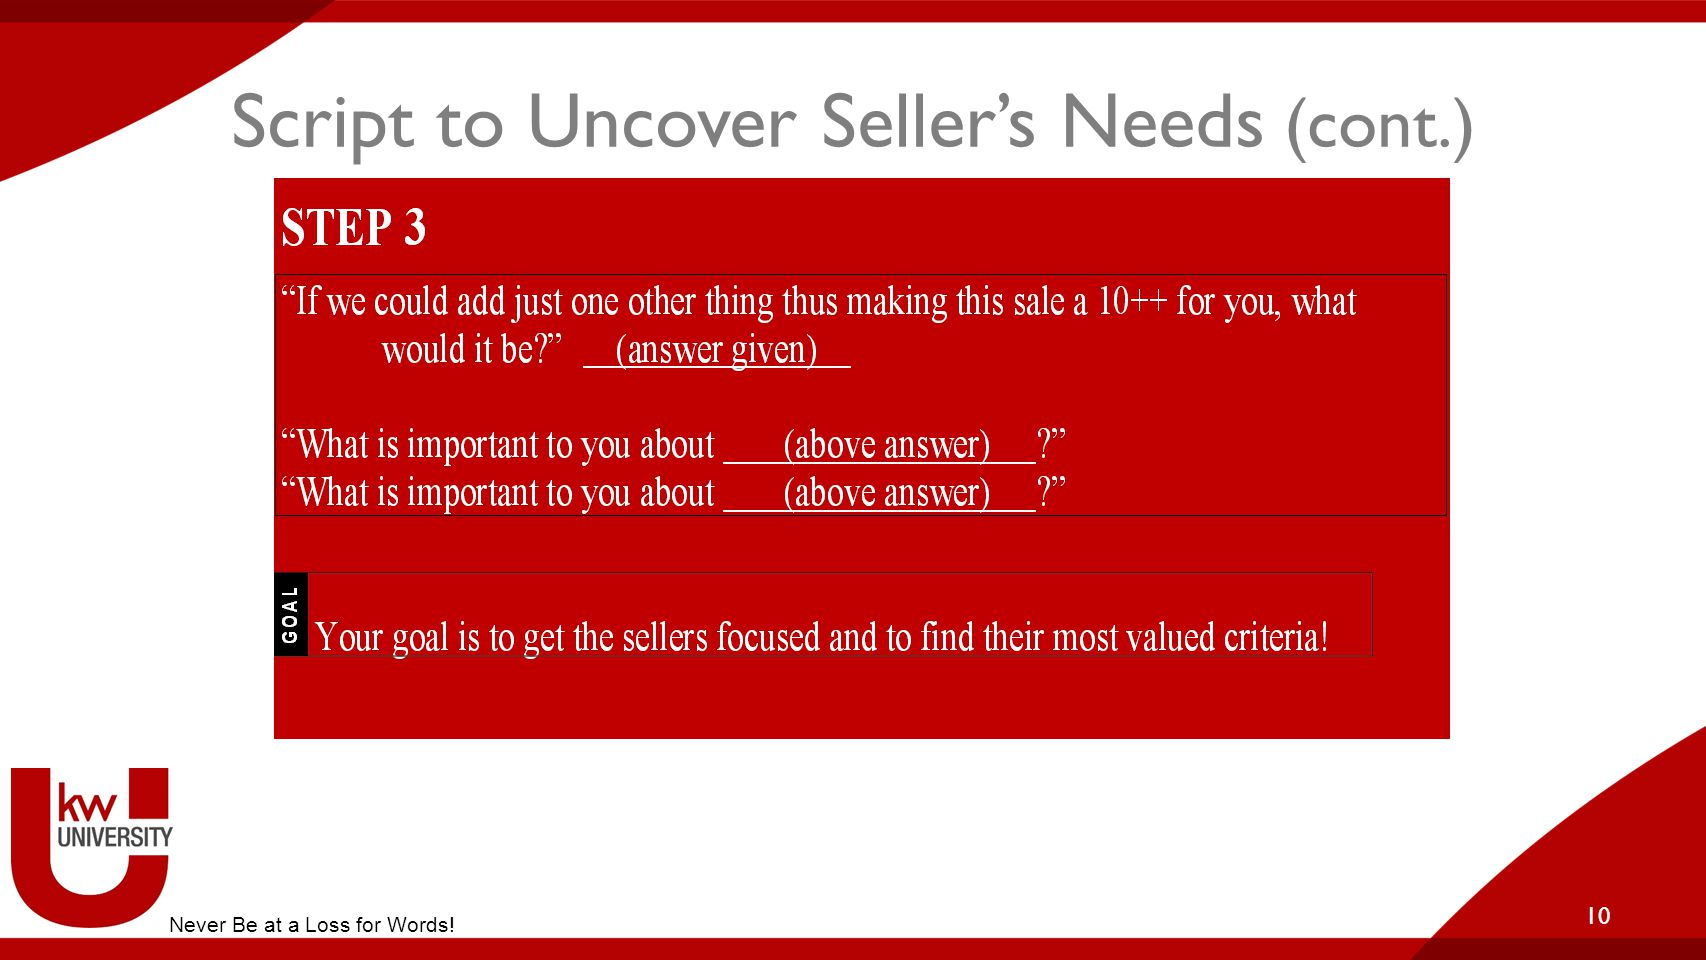 Script to Uncover Seller's Needs (cont.)